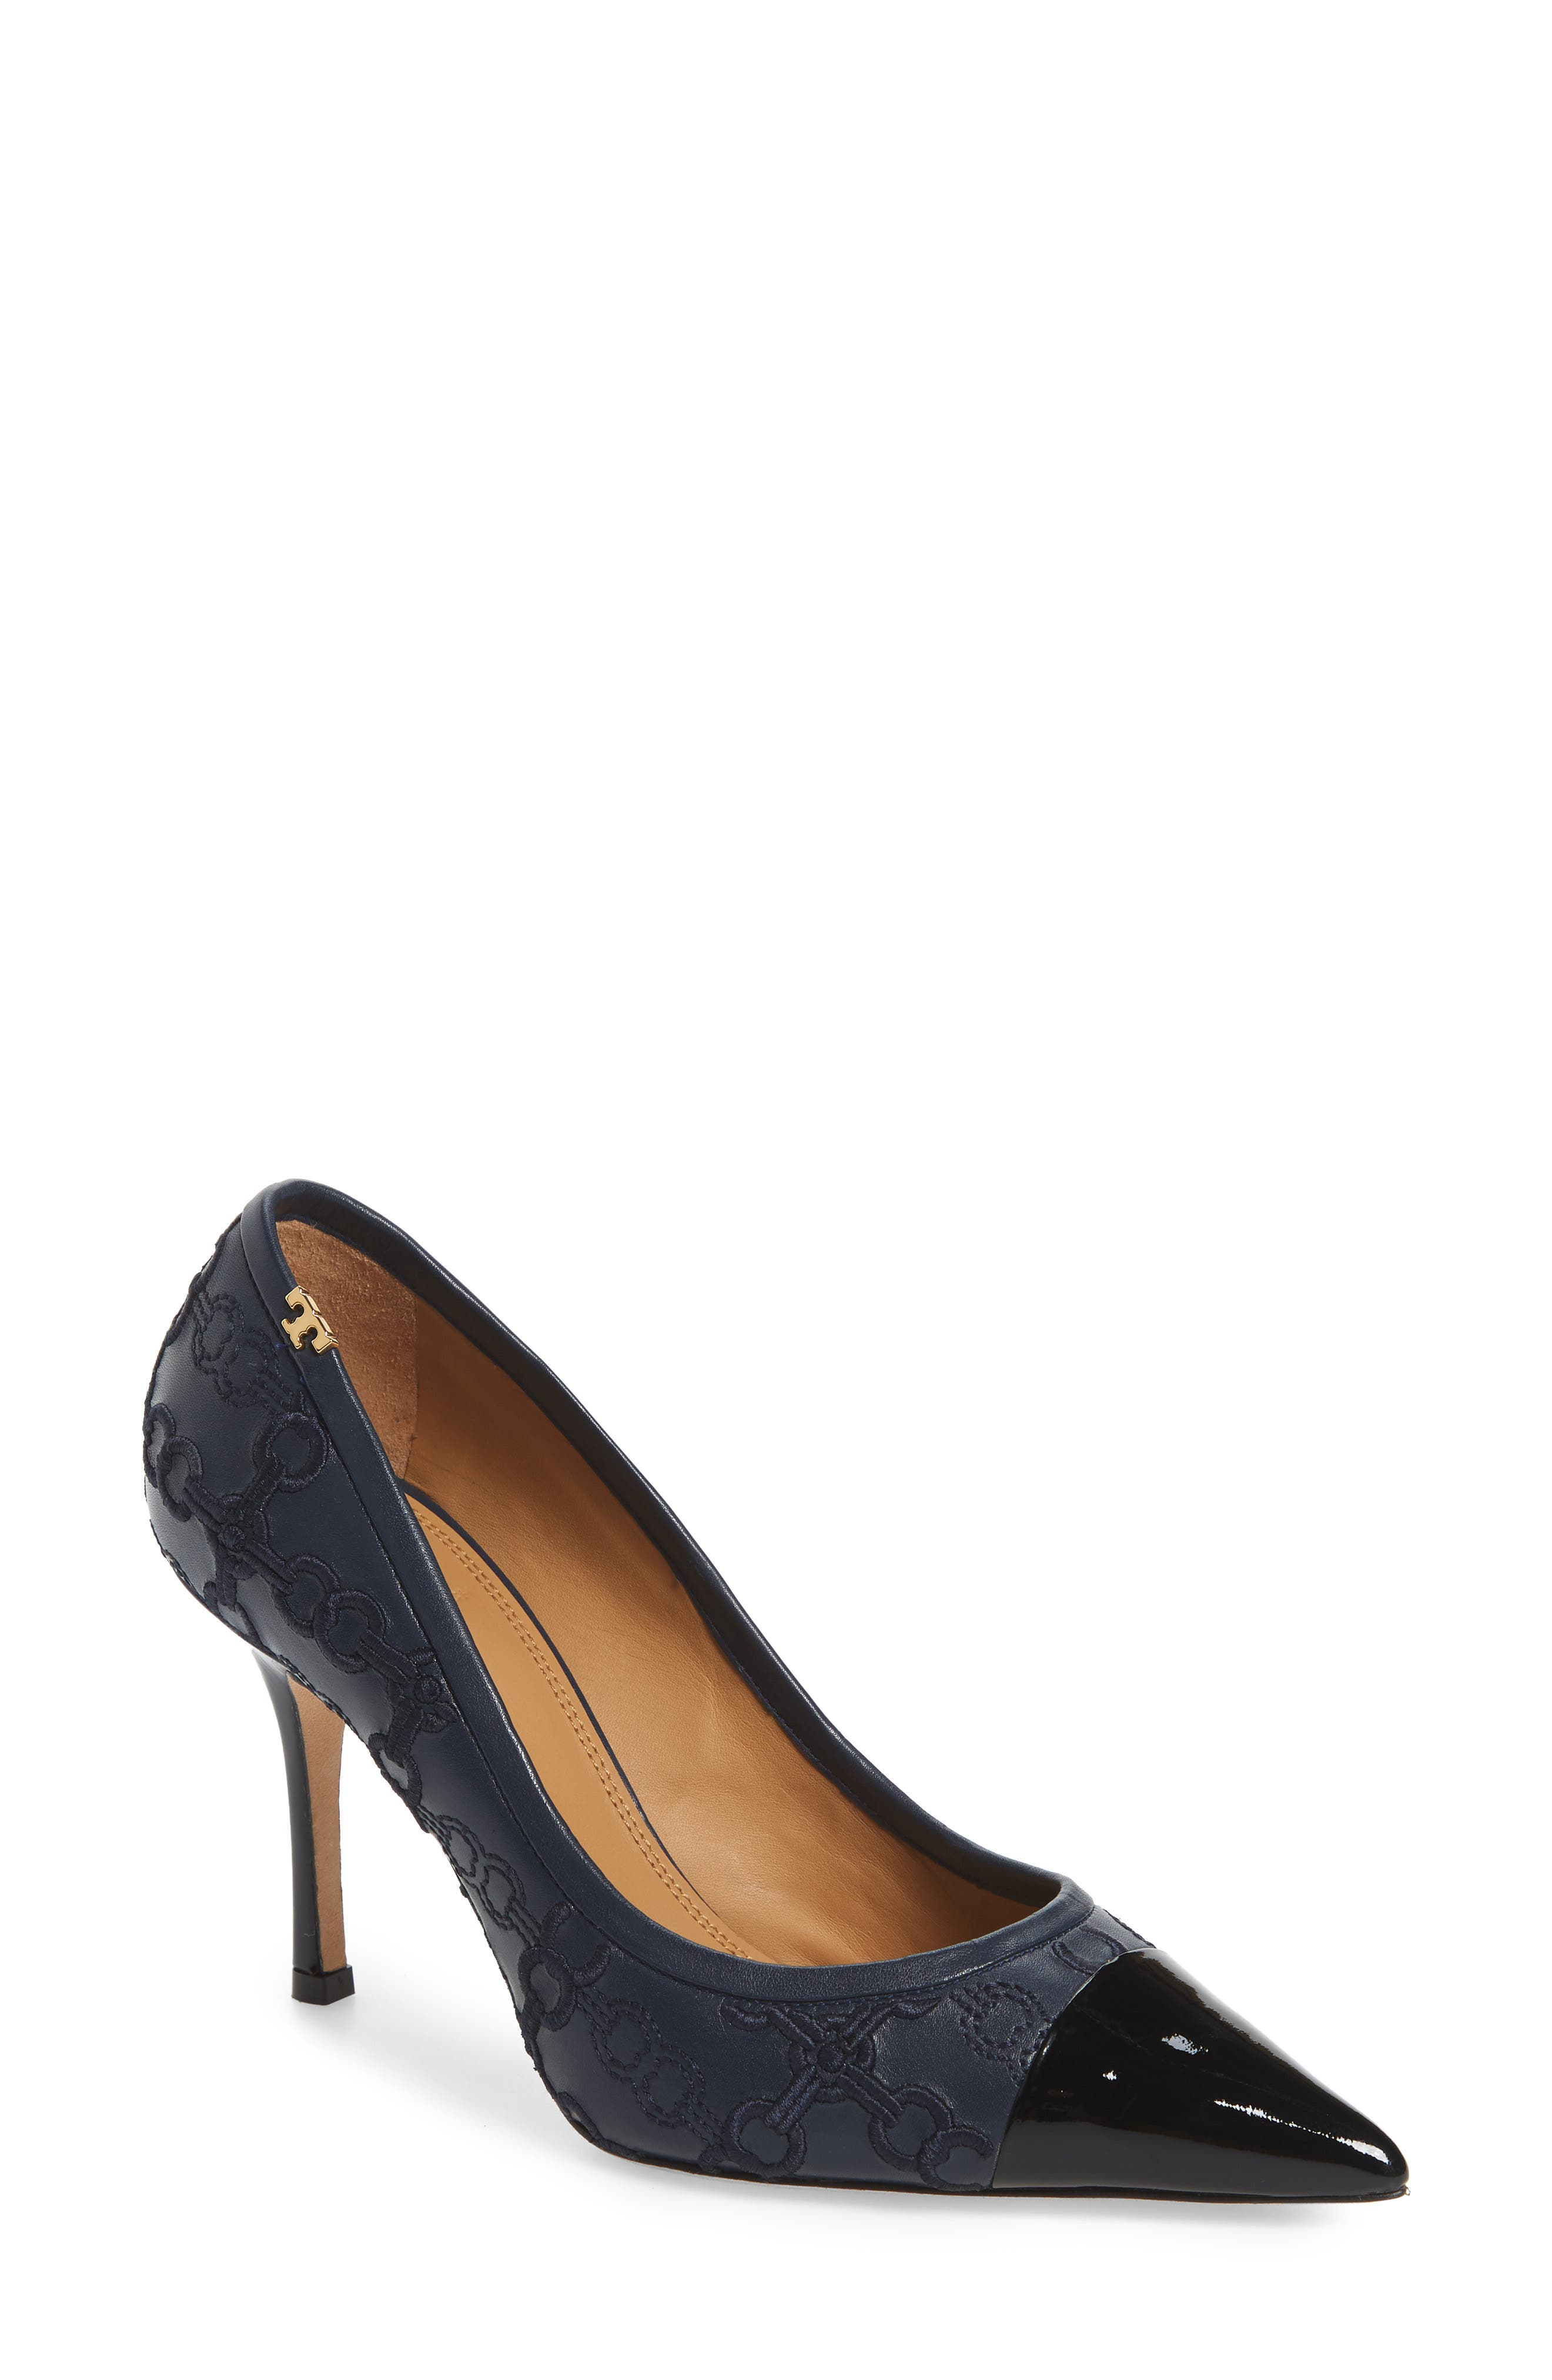 Tory Burch Pumps Penelope Embroidered Pump